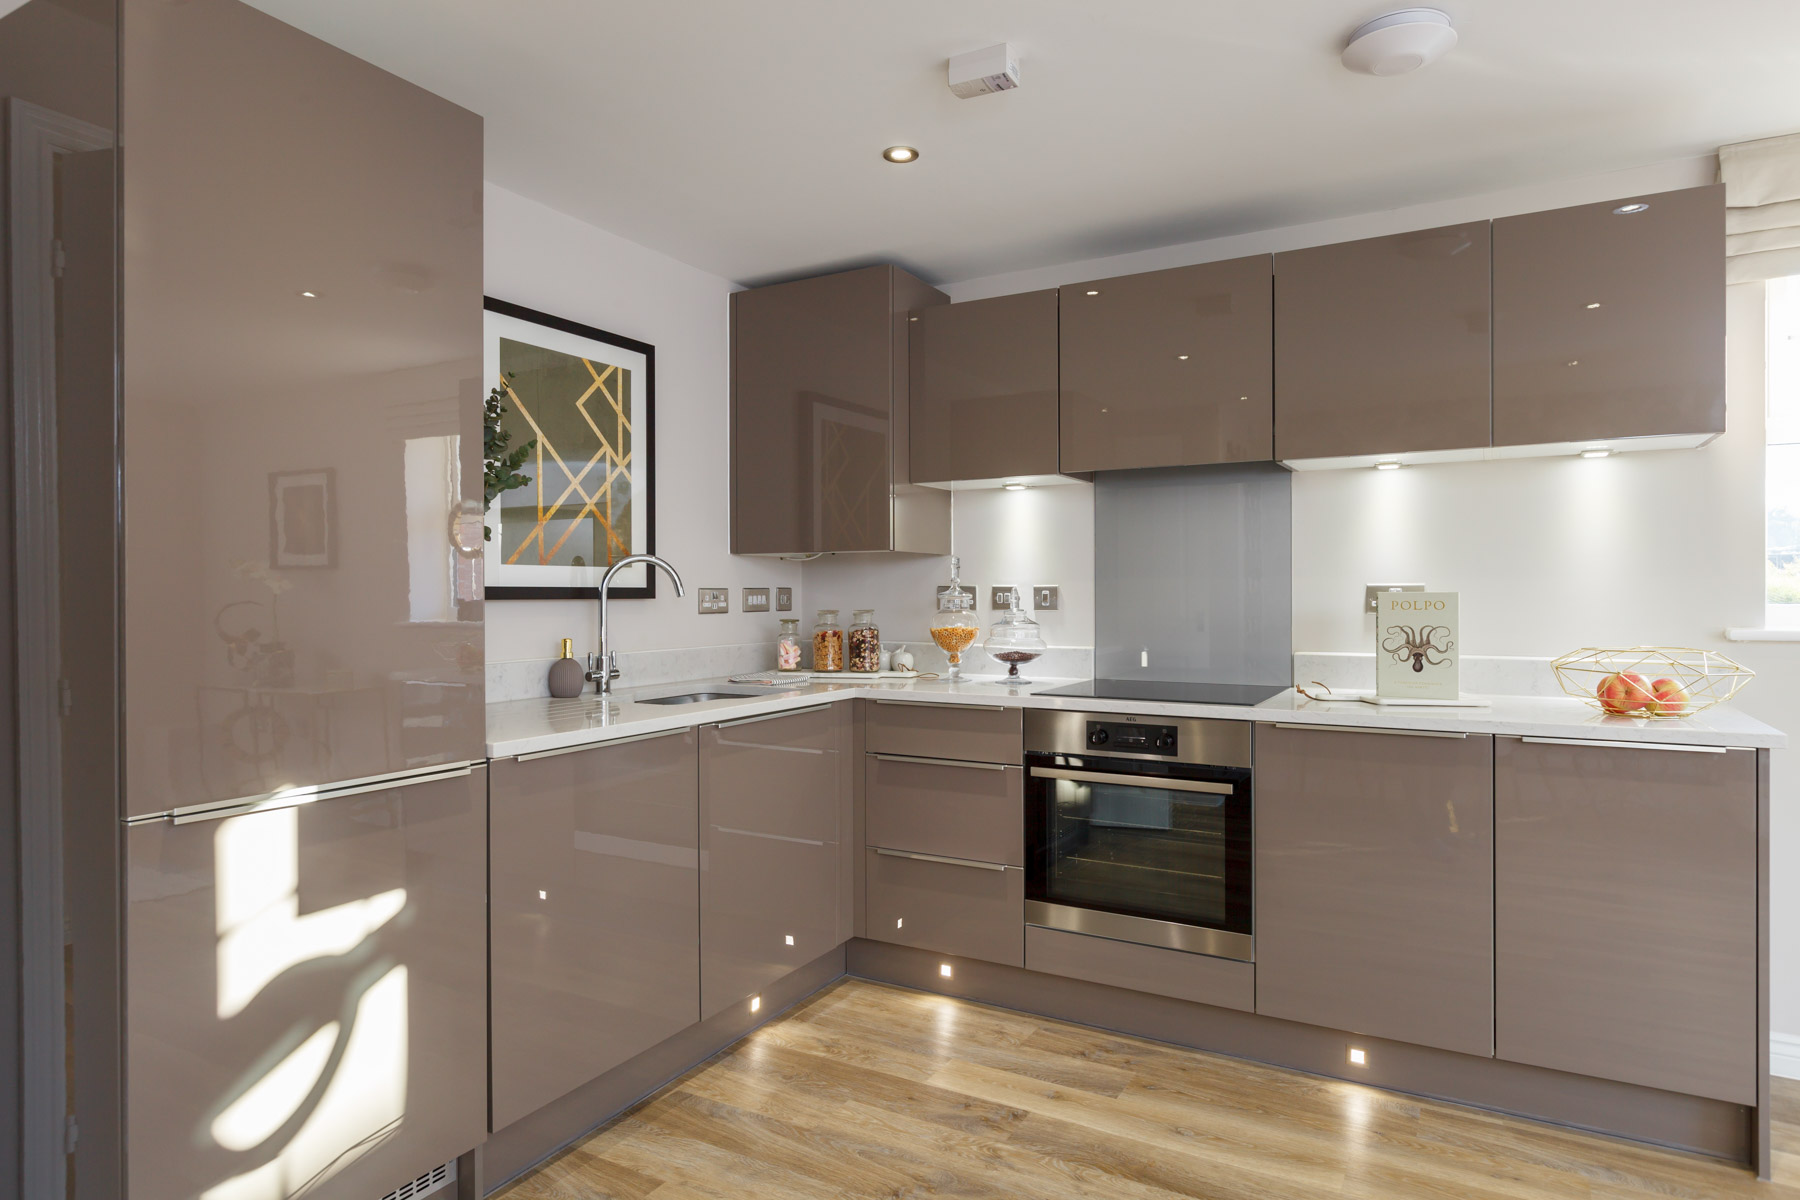 TW Exeter - Mountbatten Mews - Oaklea House example kitchen